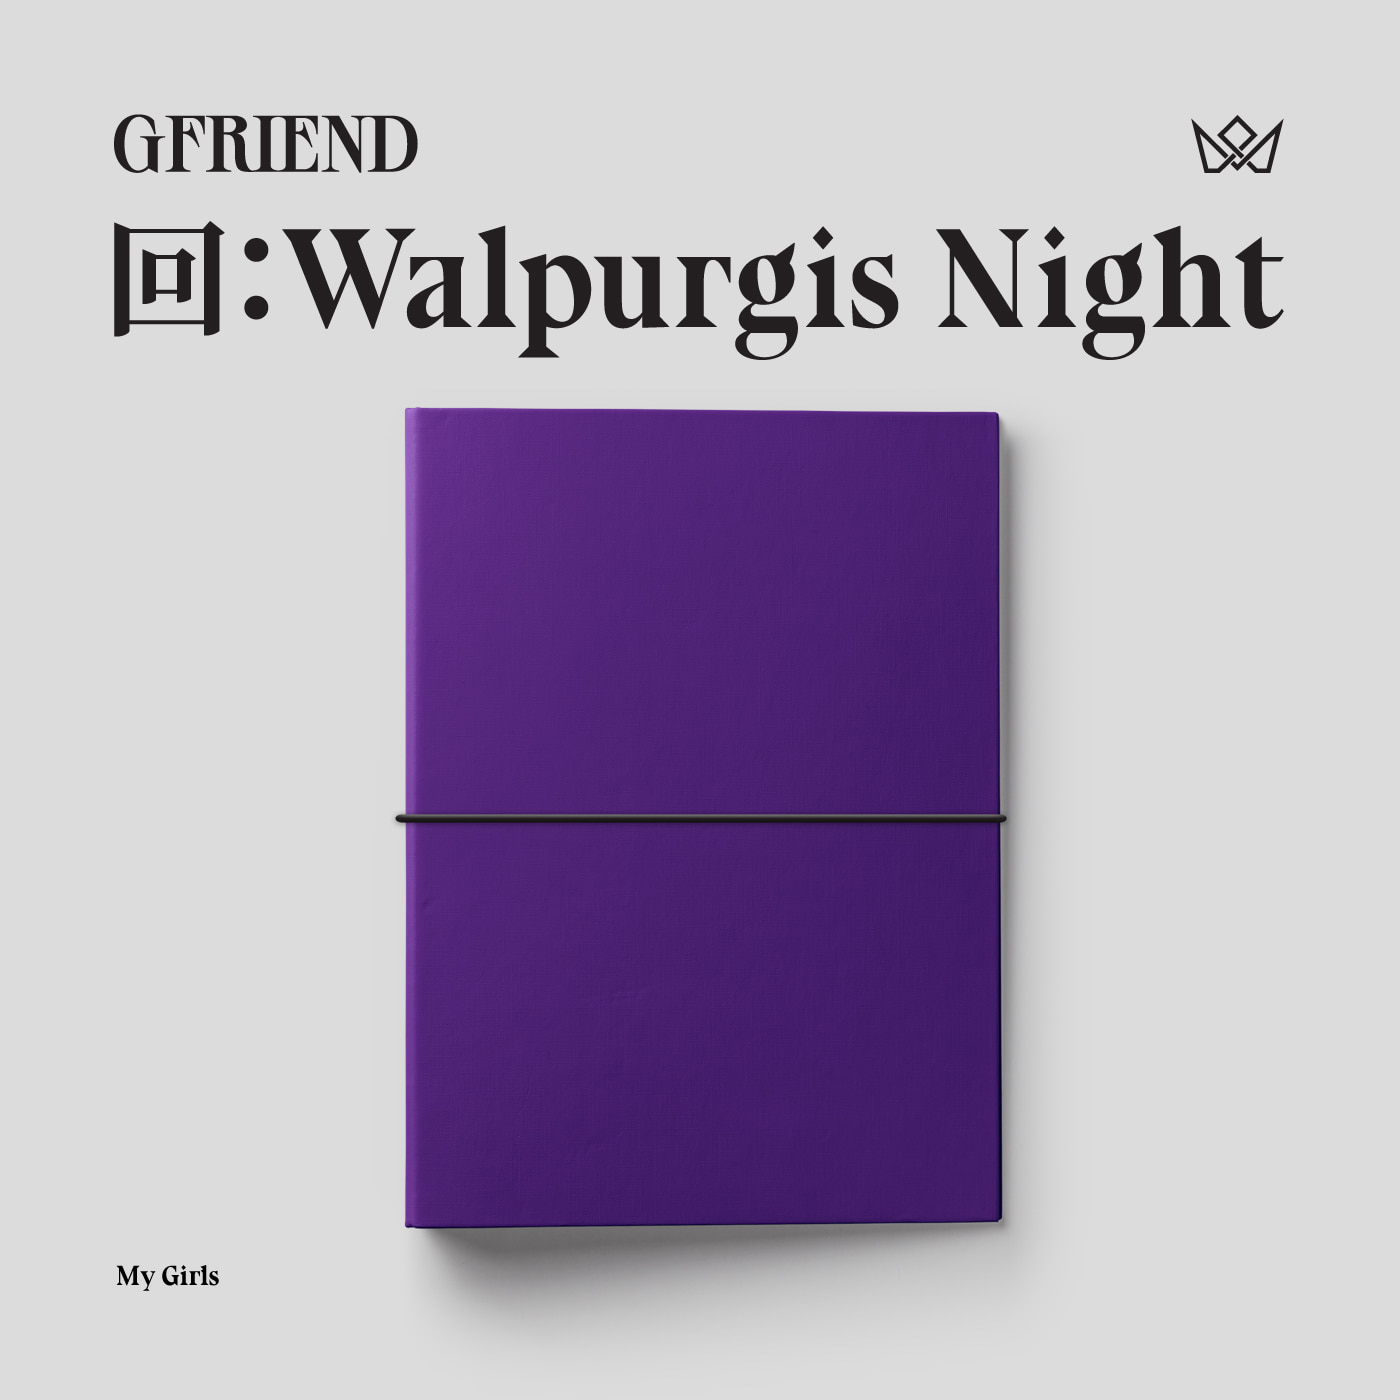 특전 / 여자친구(GFRIEND) - [回:Walpurgis Night] (My Girls Ver.)